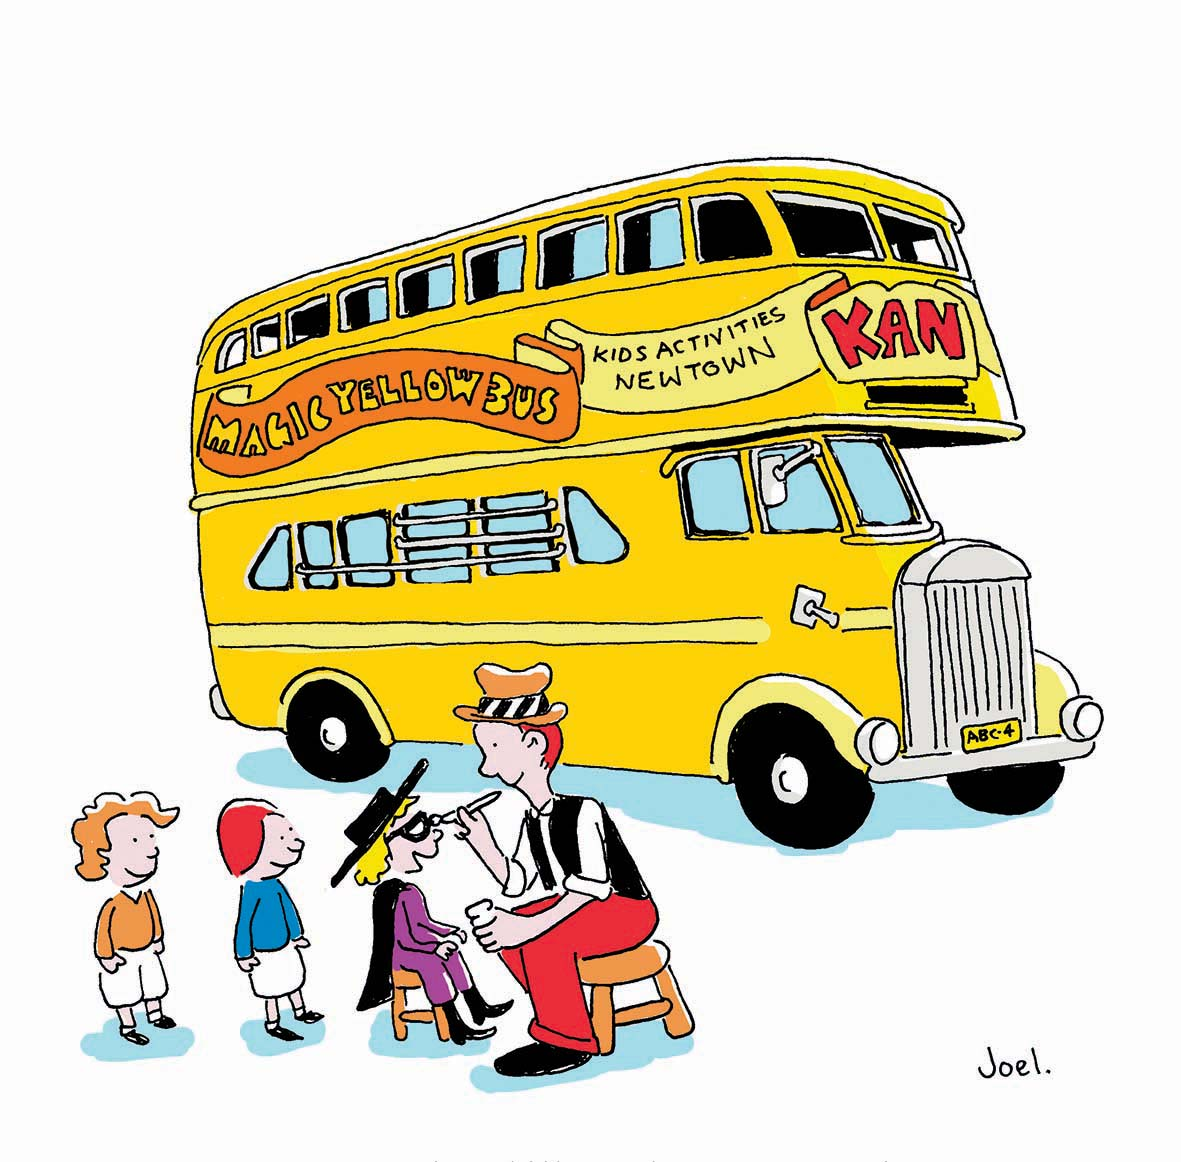 Magic_Yellow_Bus_Joel_Tarling